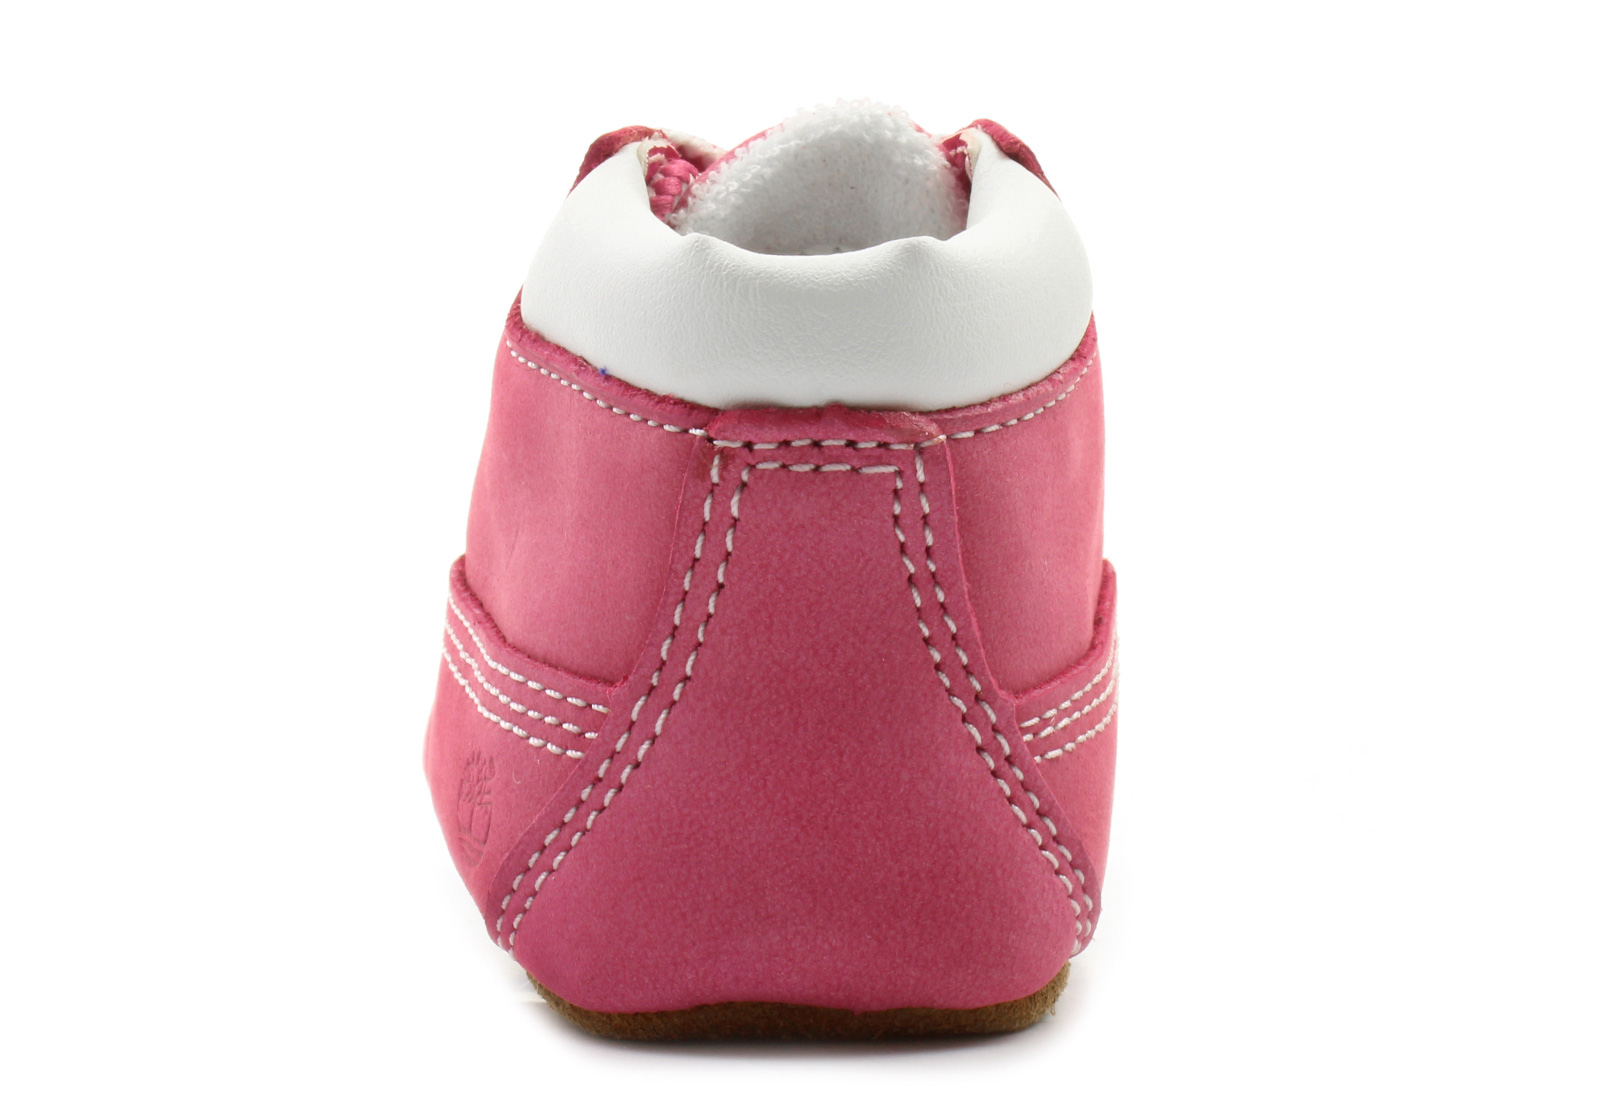 Timberland Boty - Crib Bootie With Hat - 9680R-pnkTenisky d5692dc318b